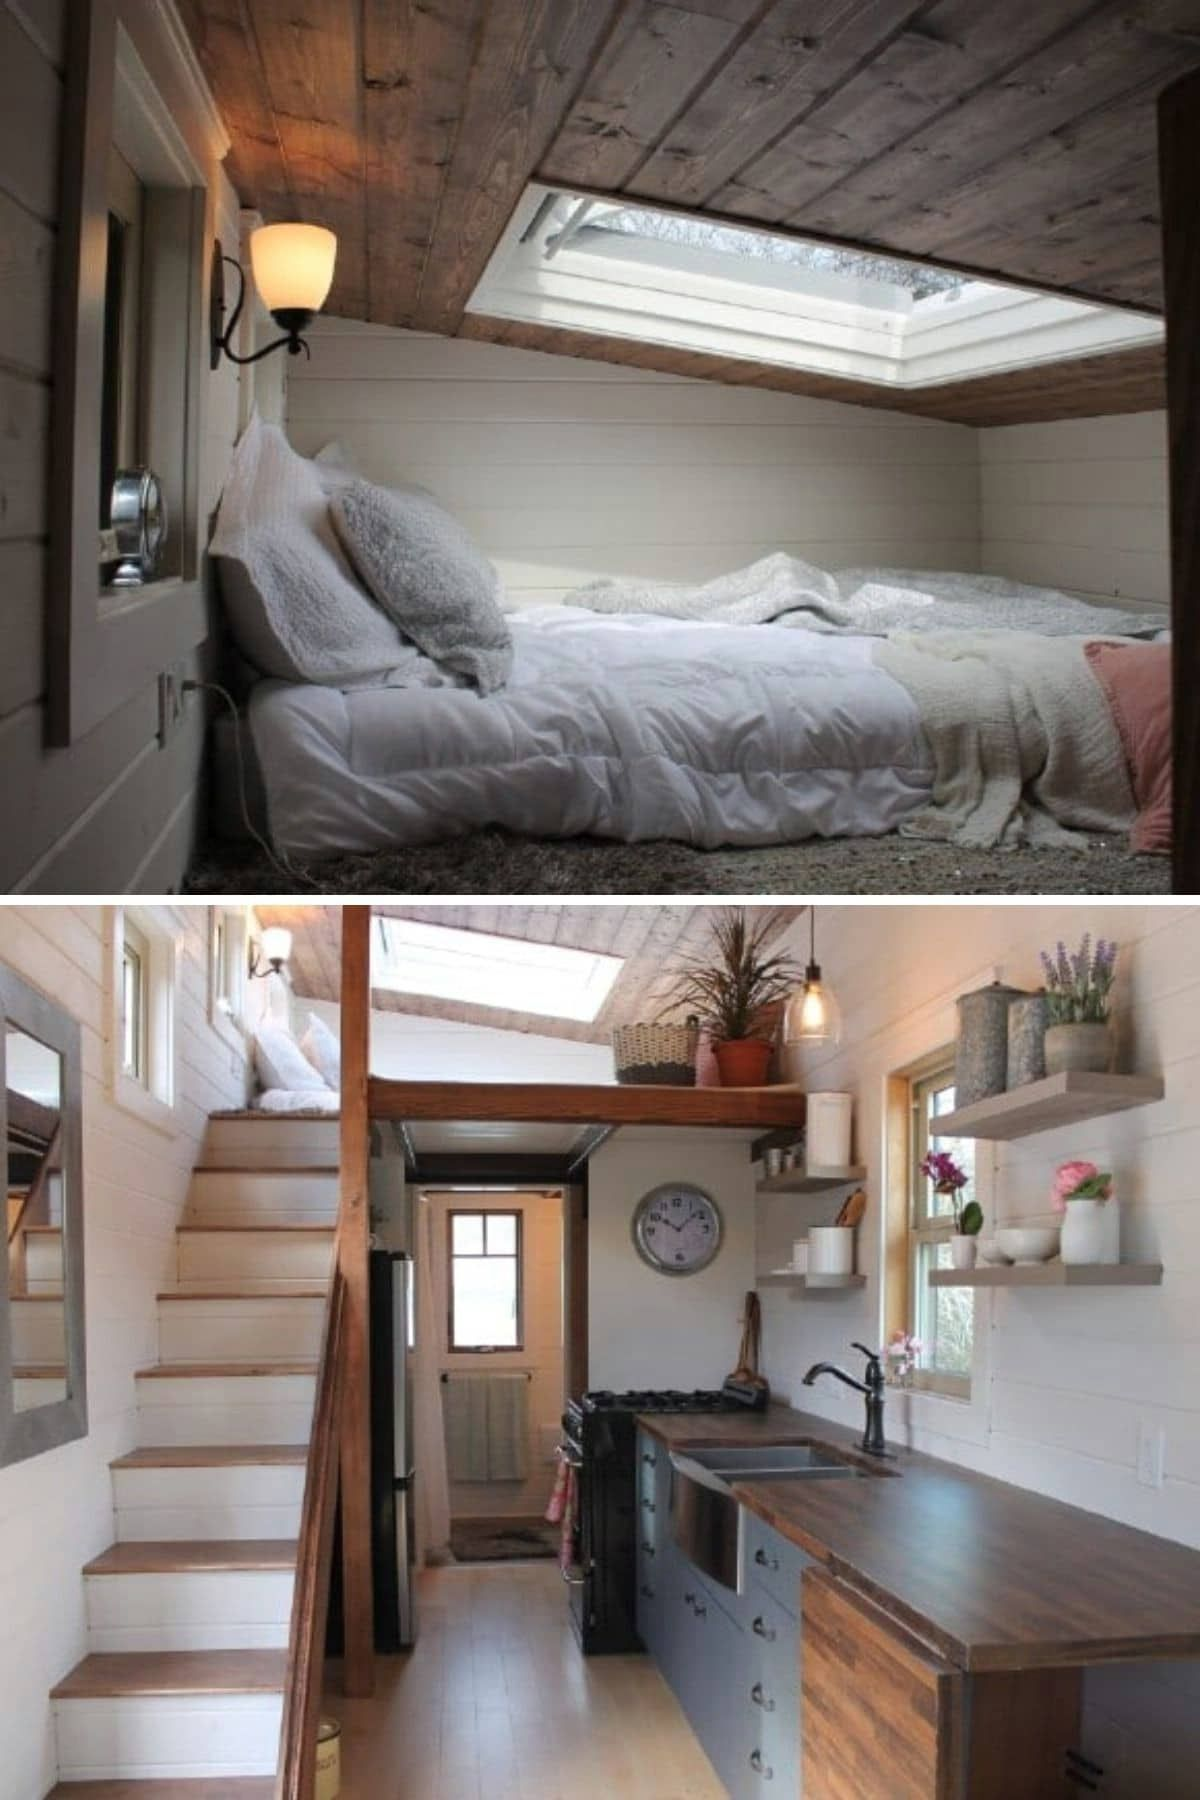 80 Tiny Houses With The Most Amazing Lofts Tiny House Bedroom Small Loft Spaces Shed To Tiny House